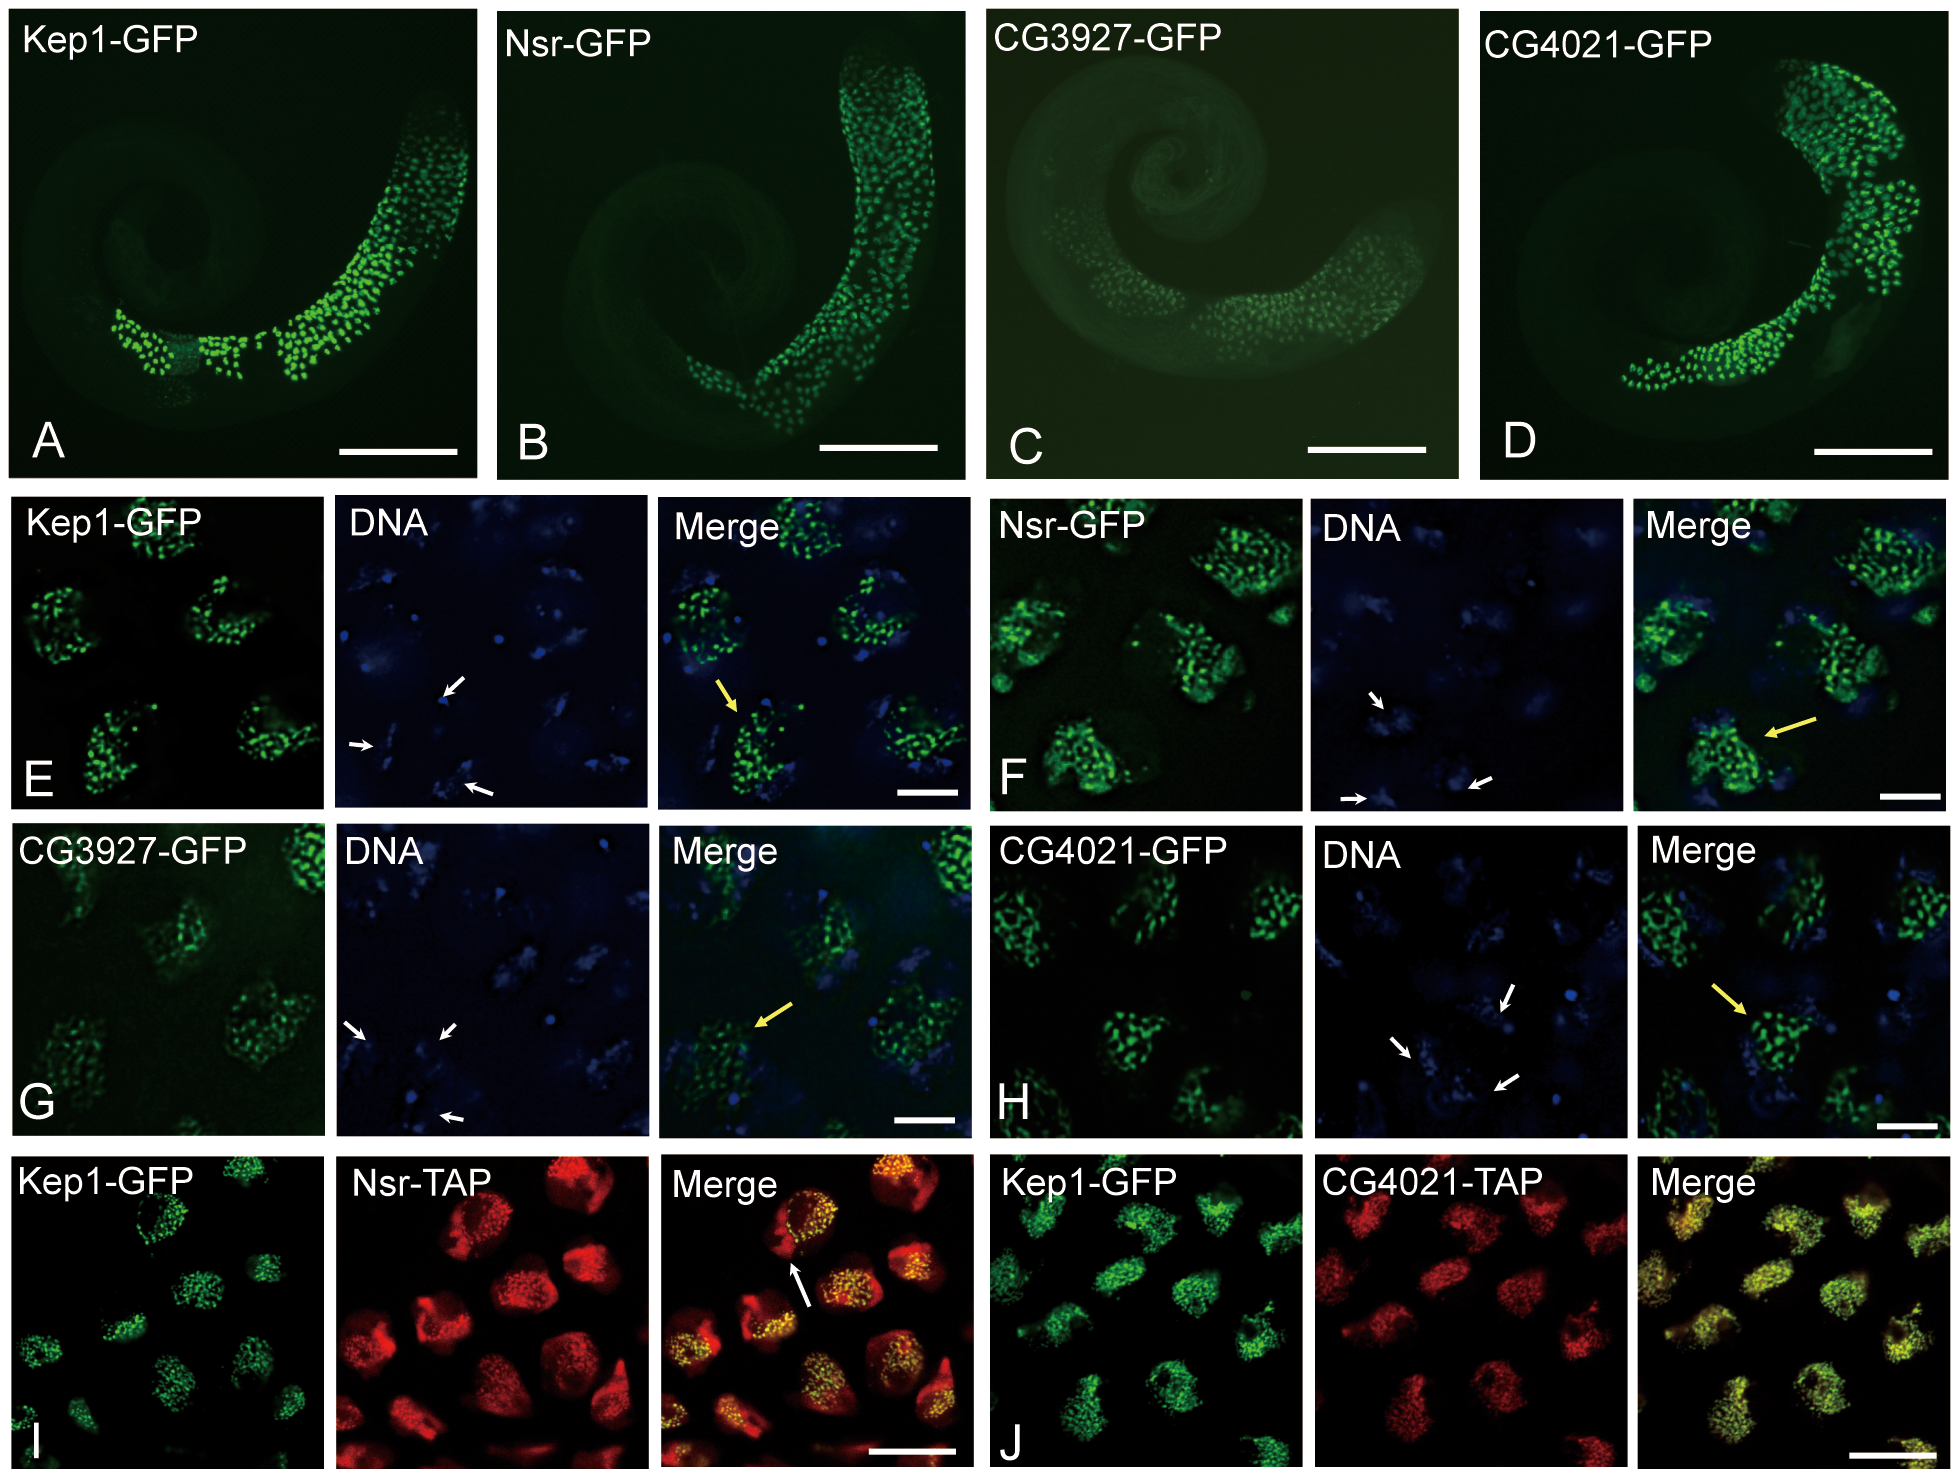 Expression analysis of <i>kep1</i> family proteins by GFP transgene in <i>D. melanogaster</i>.